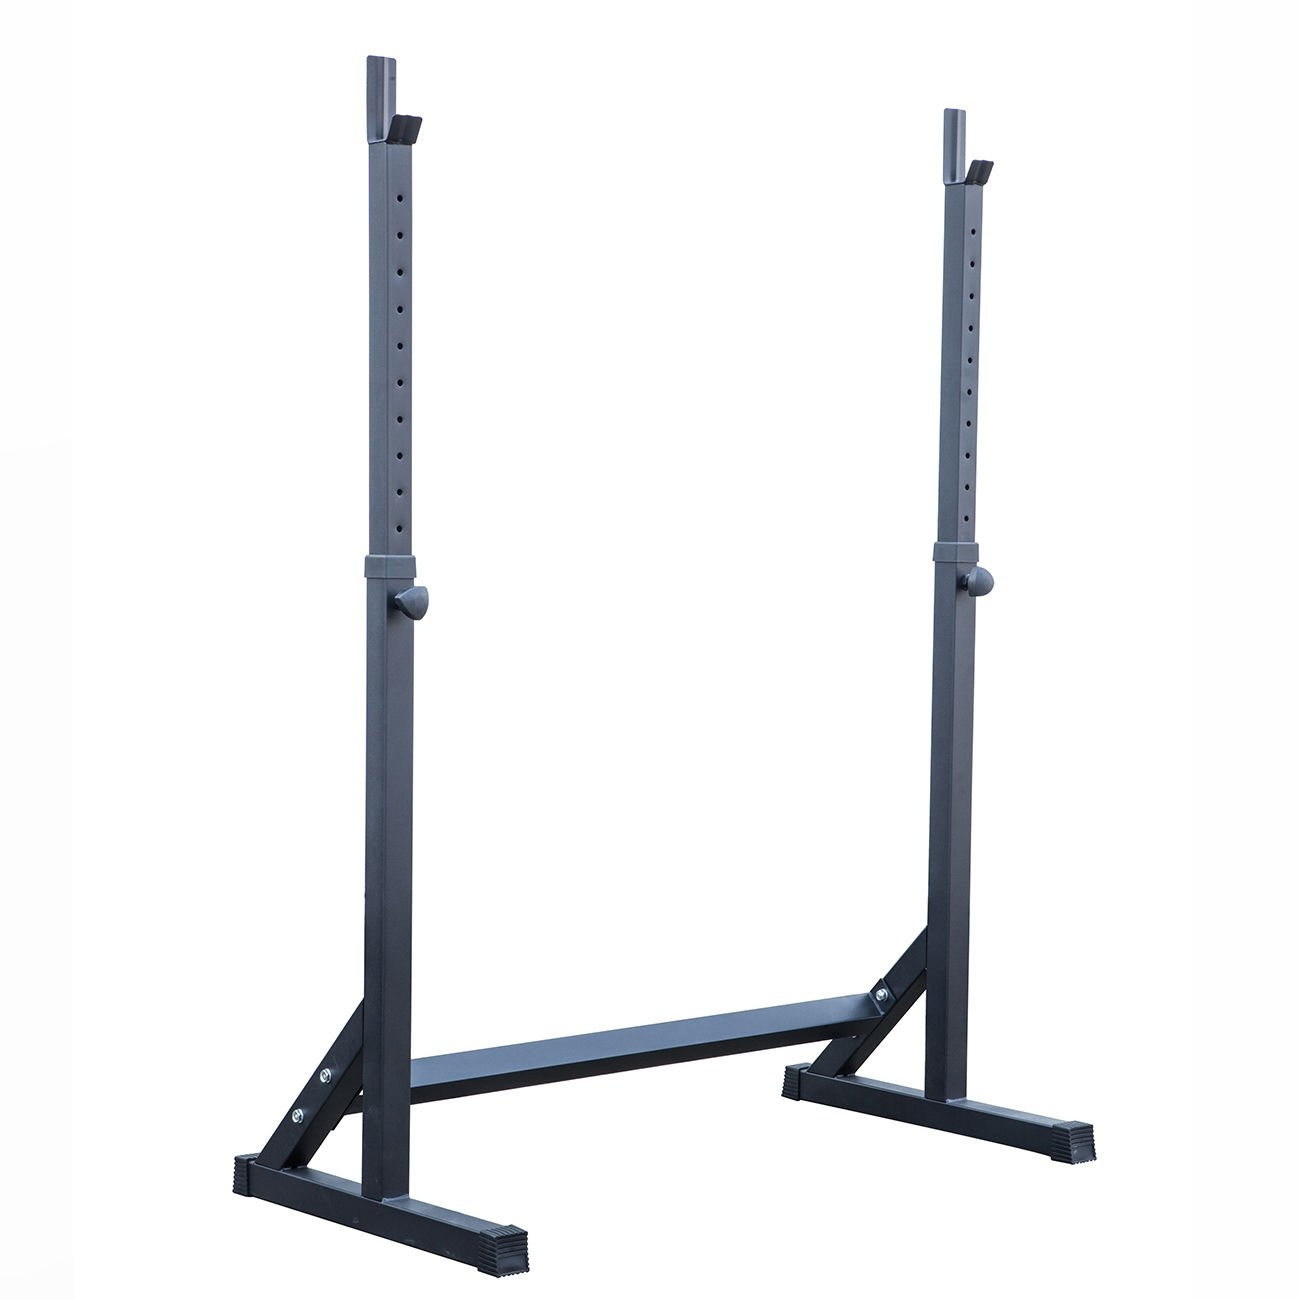 Adjustable Squat Rack Stand Barball Free Press Bench Equipment Training Crossfit